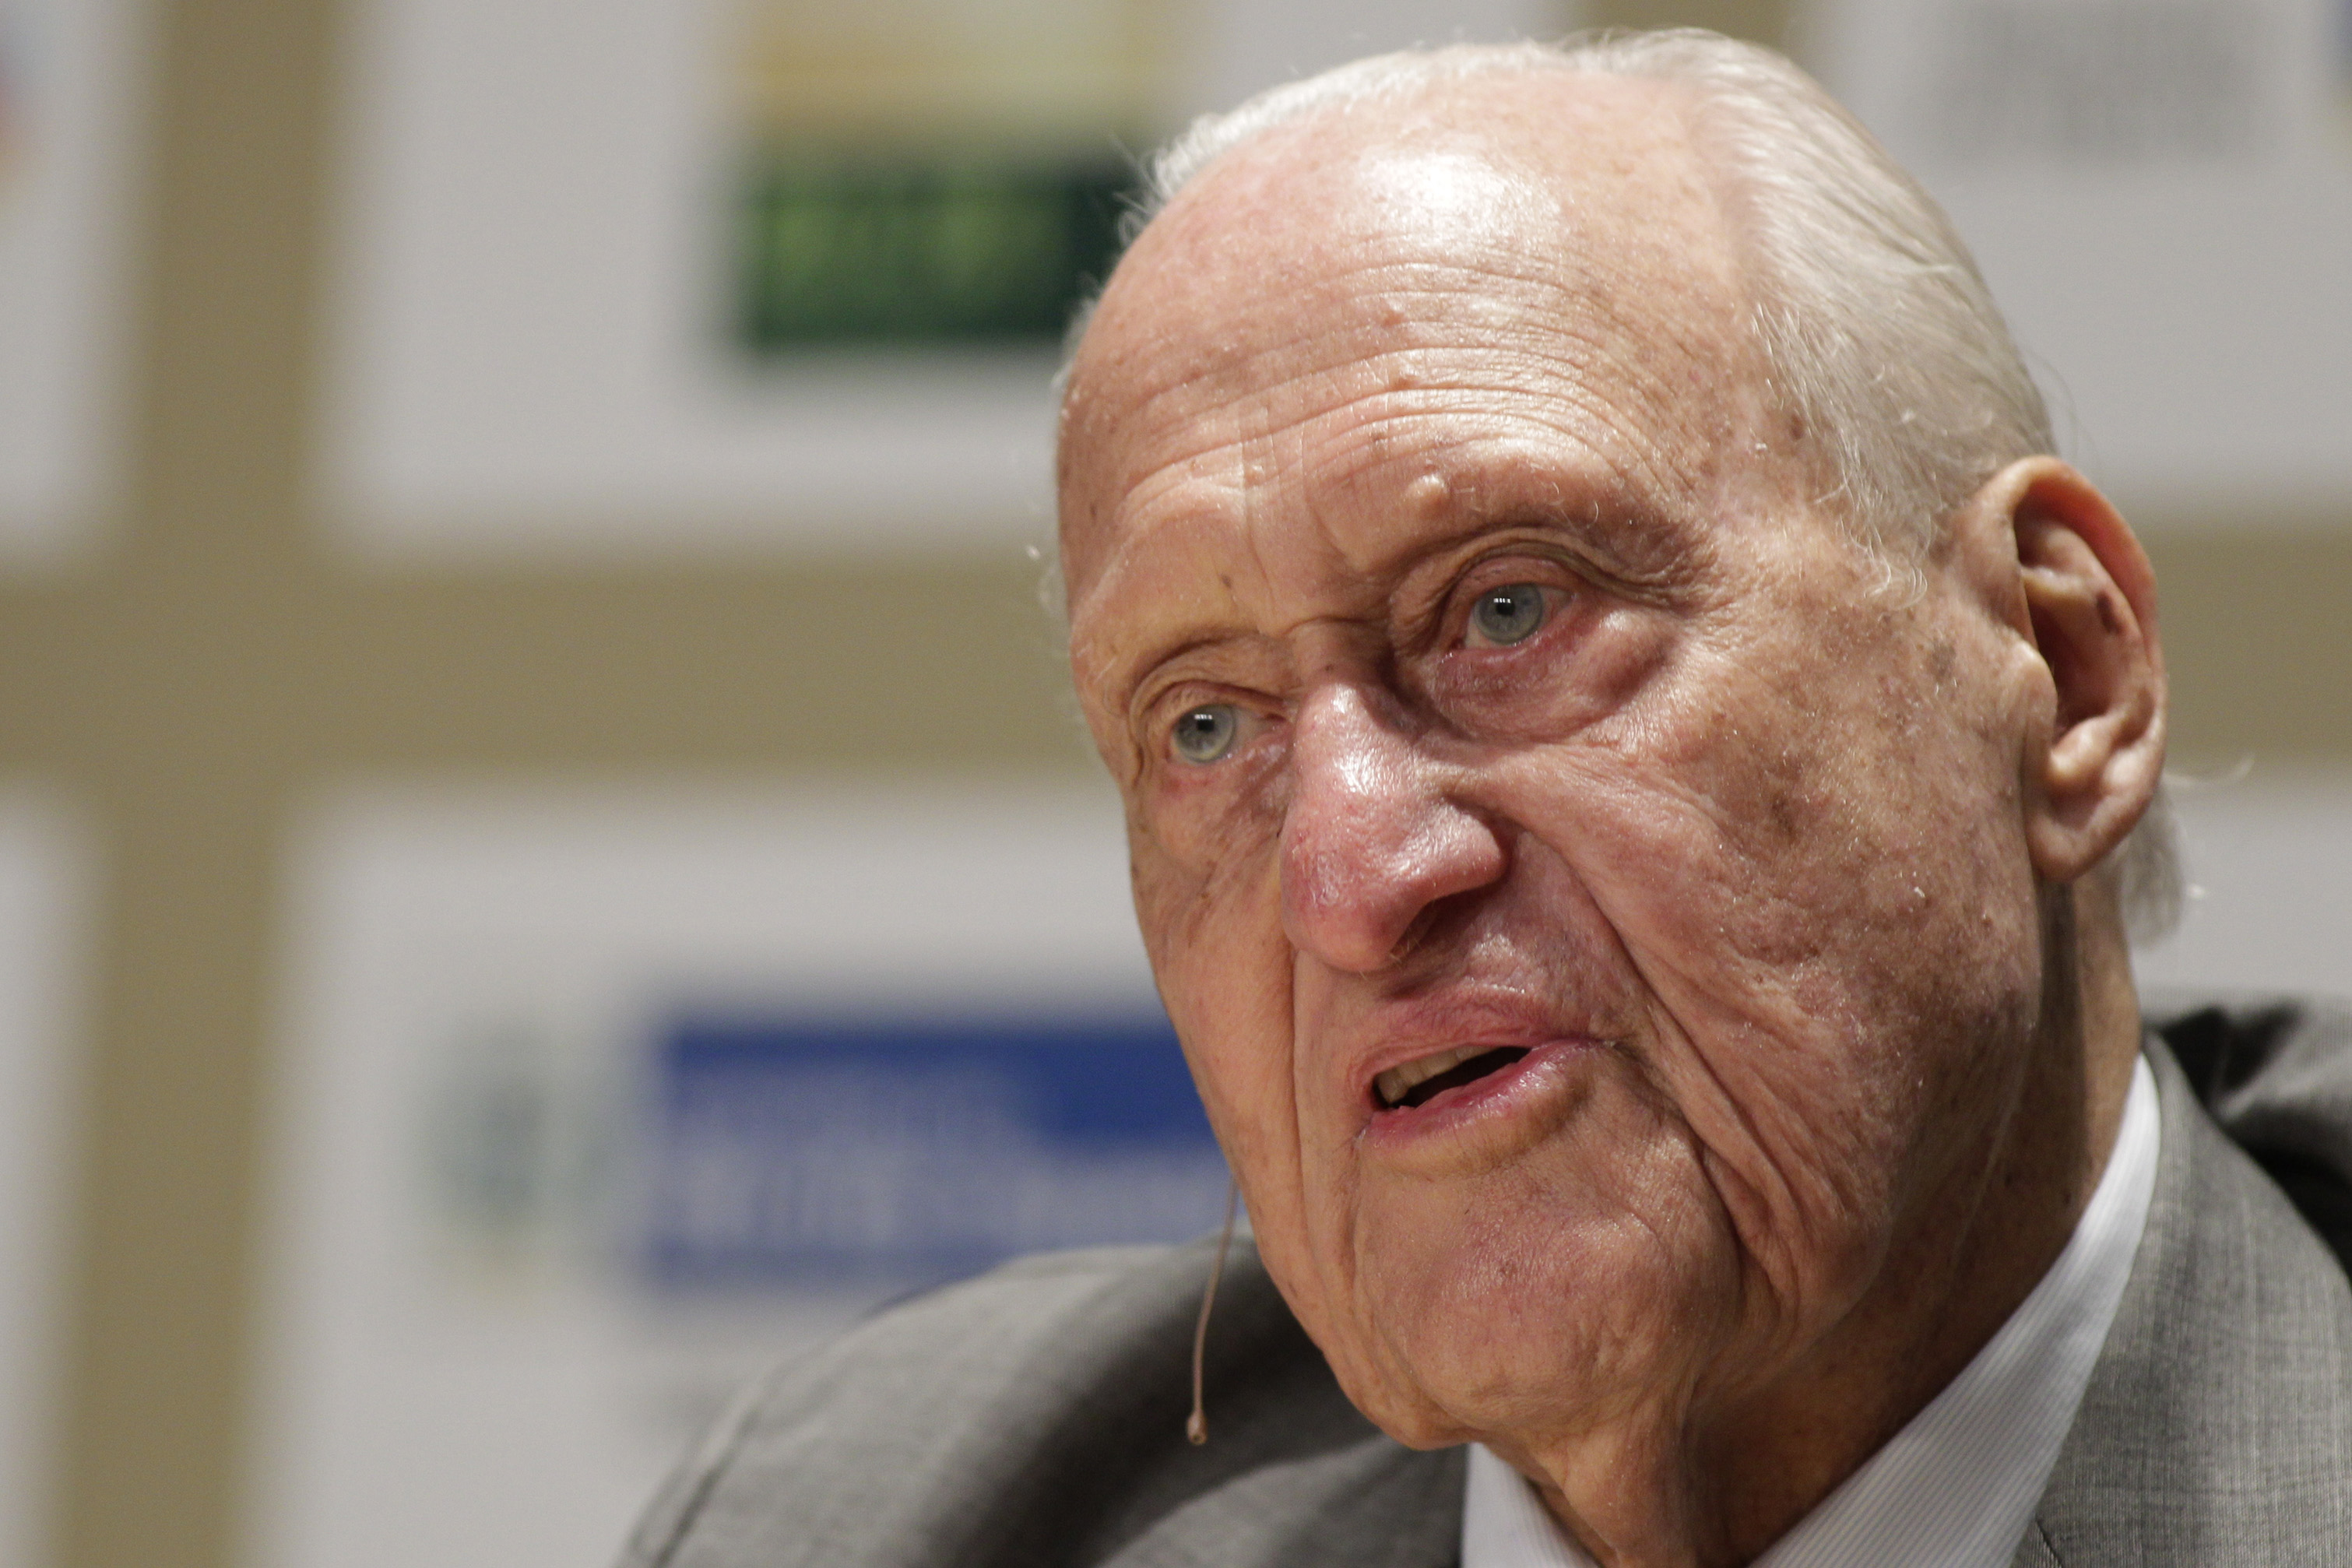 FILE - In this Nov. 22, 2010, file photo, Joao Havelange, a former FIFA president, speaks during an interview at the Soccerex Global Convention in Rio de Janeiro, Brazil. Havelange delivered an impassioned speech seven years ago in French, urging fellow I